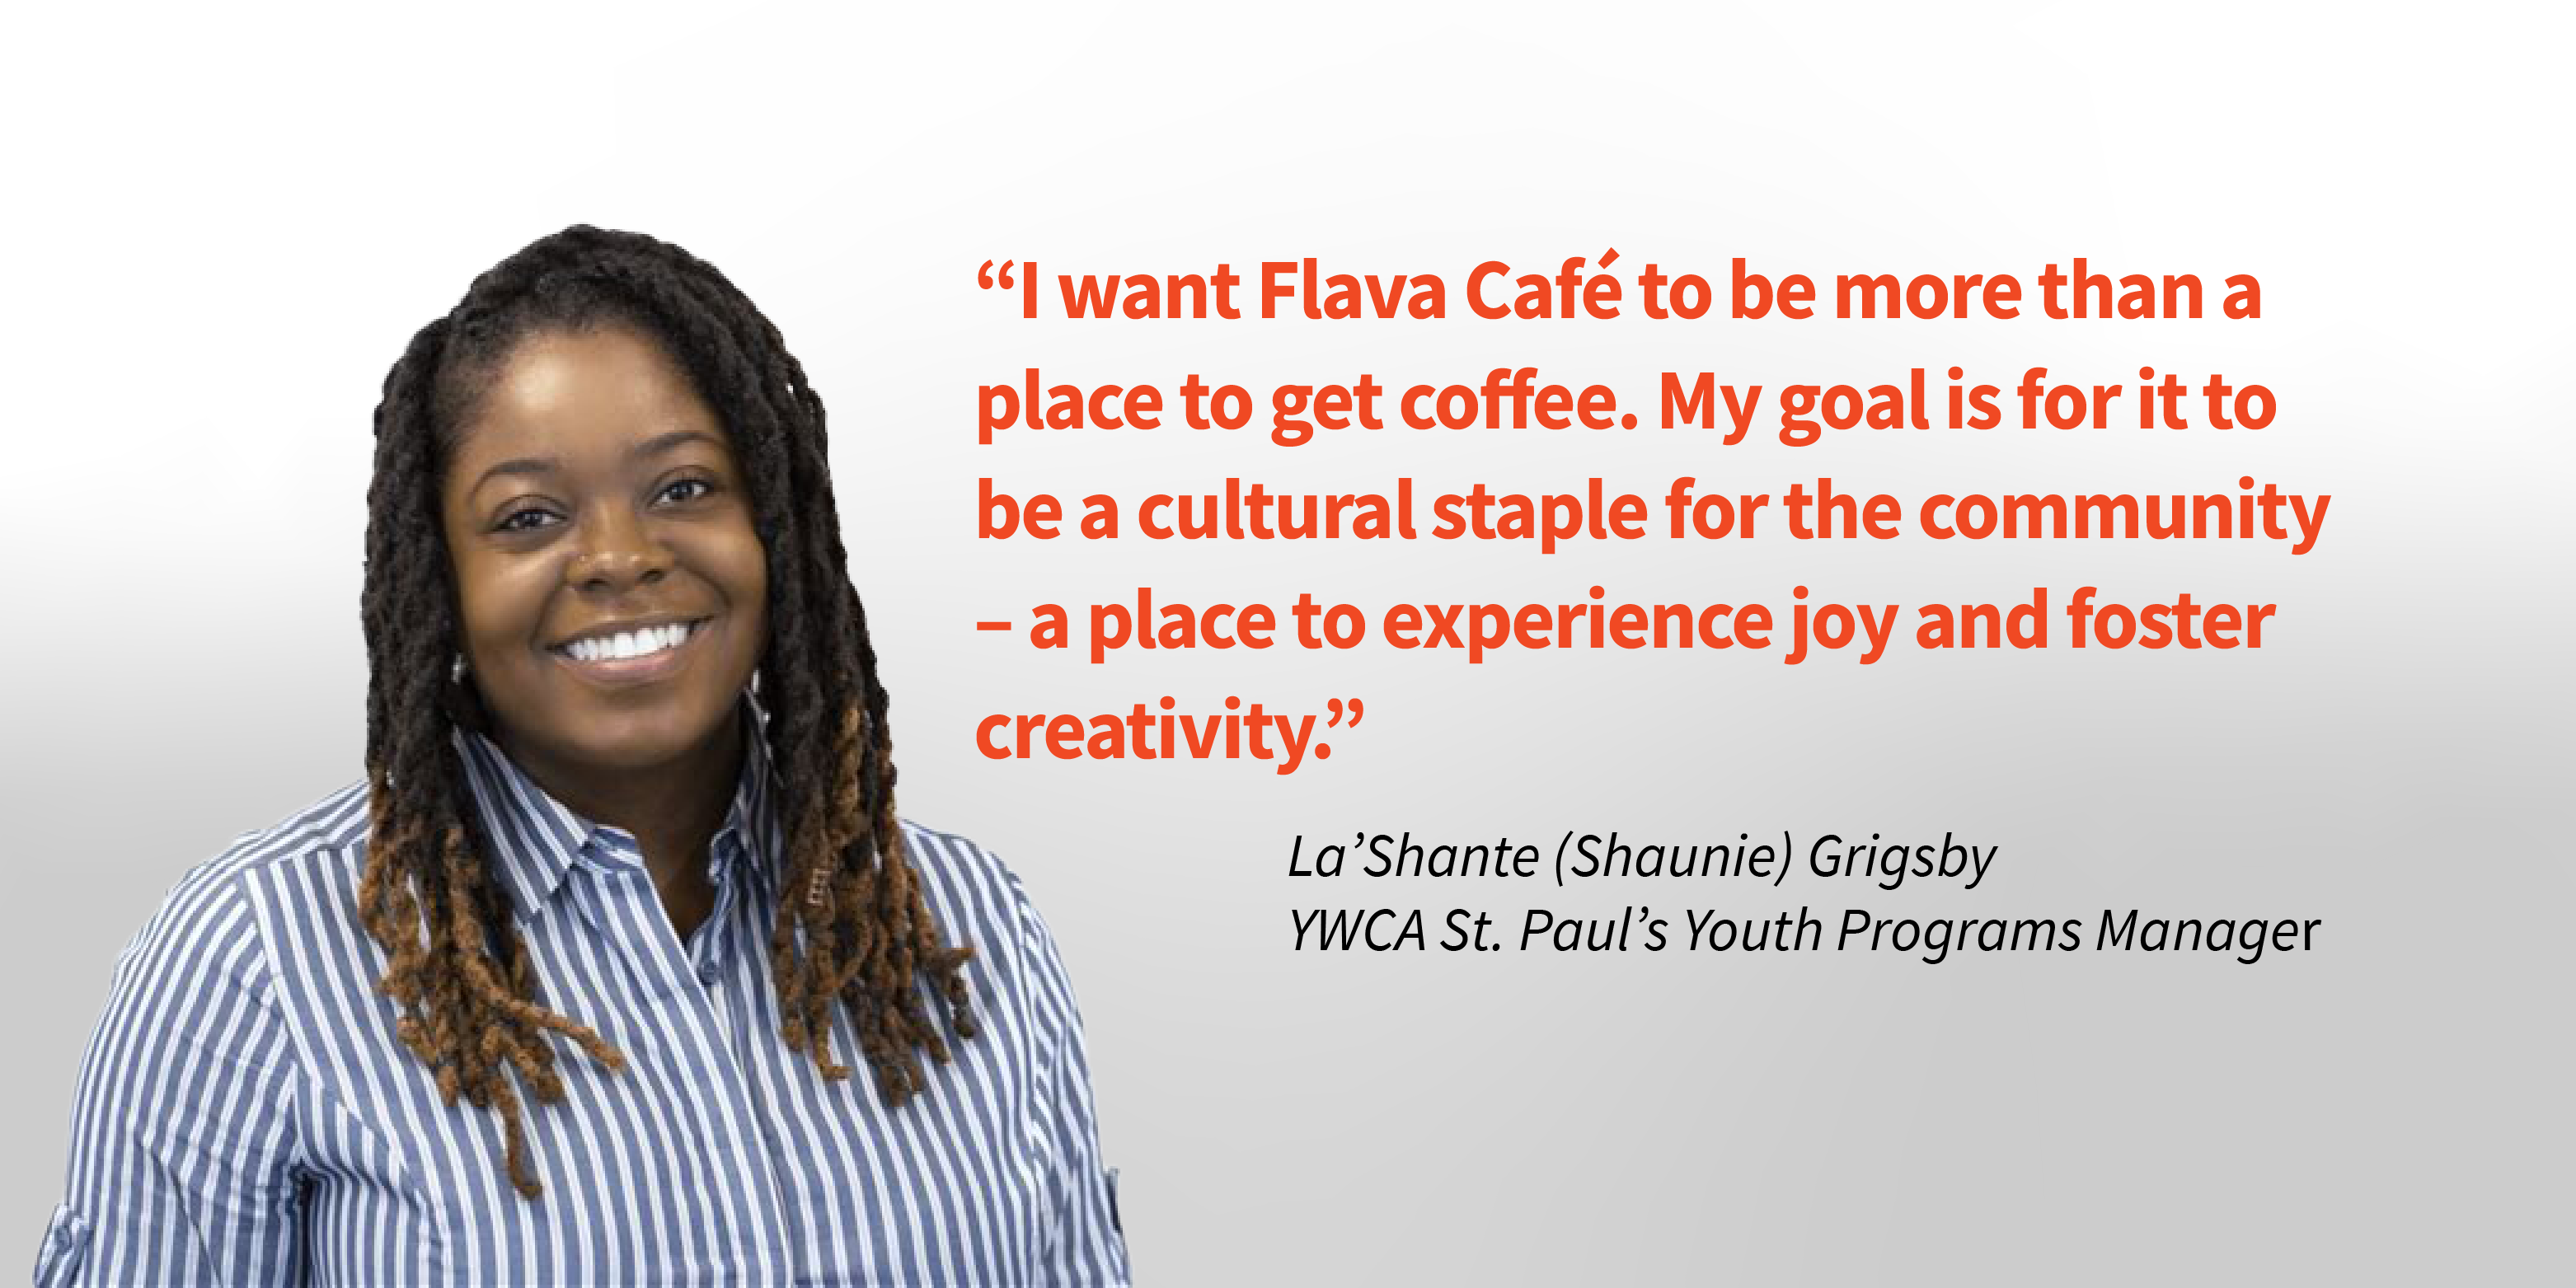 """Photo of La'Shante Grigsby on a white background with her quote, """"I want Flava Cafe to be more than a place to get coffee. My goal is for it to be a cultural staple for the community—a place to experience joy and foster creativity."""""""